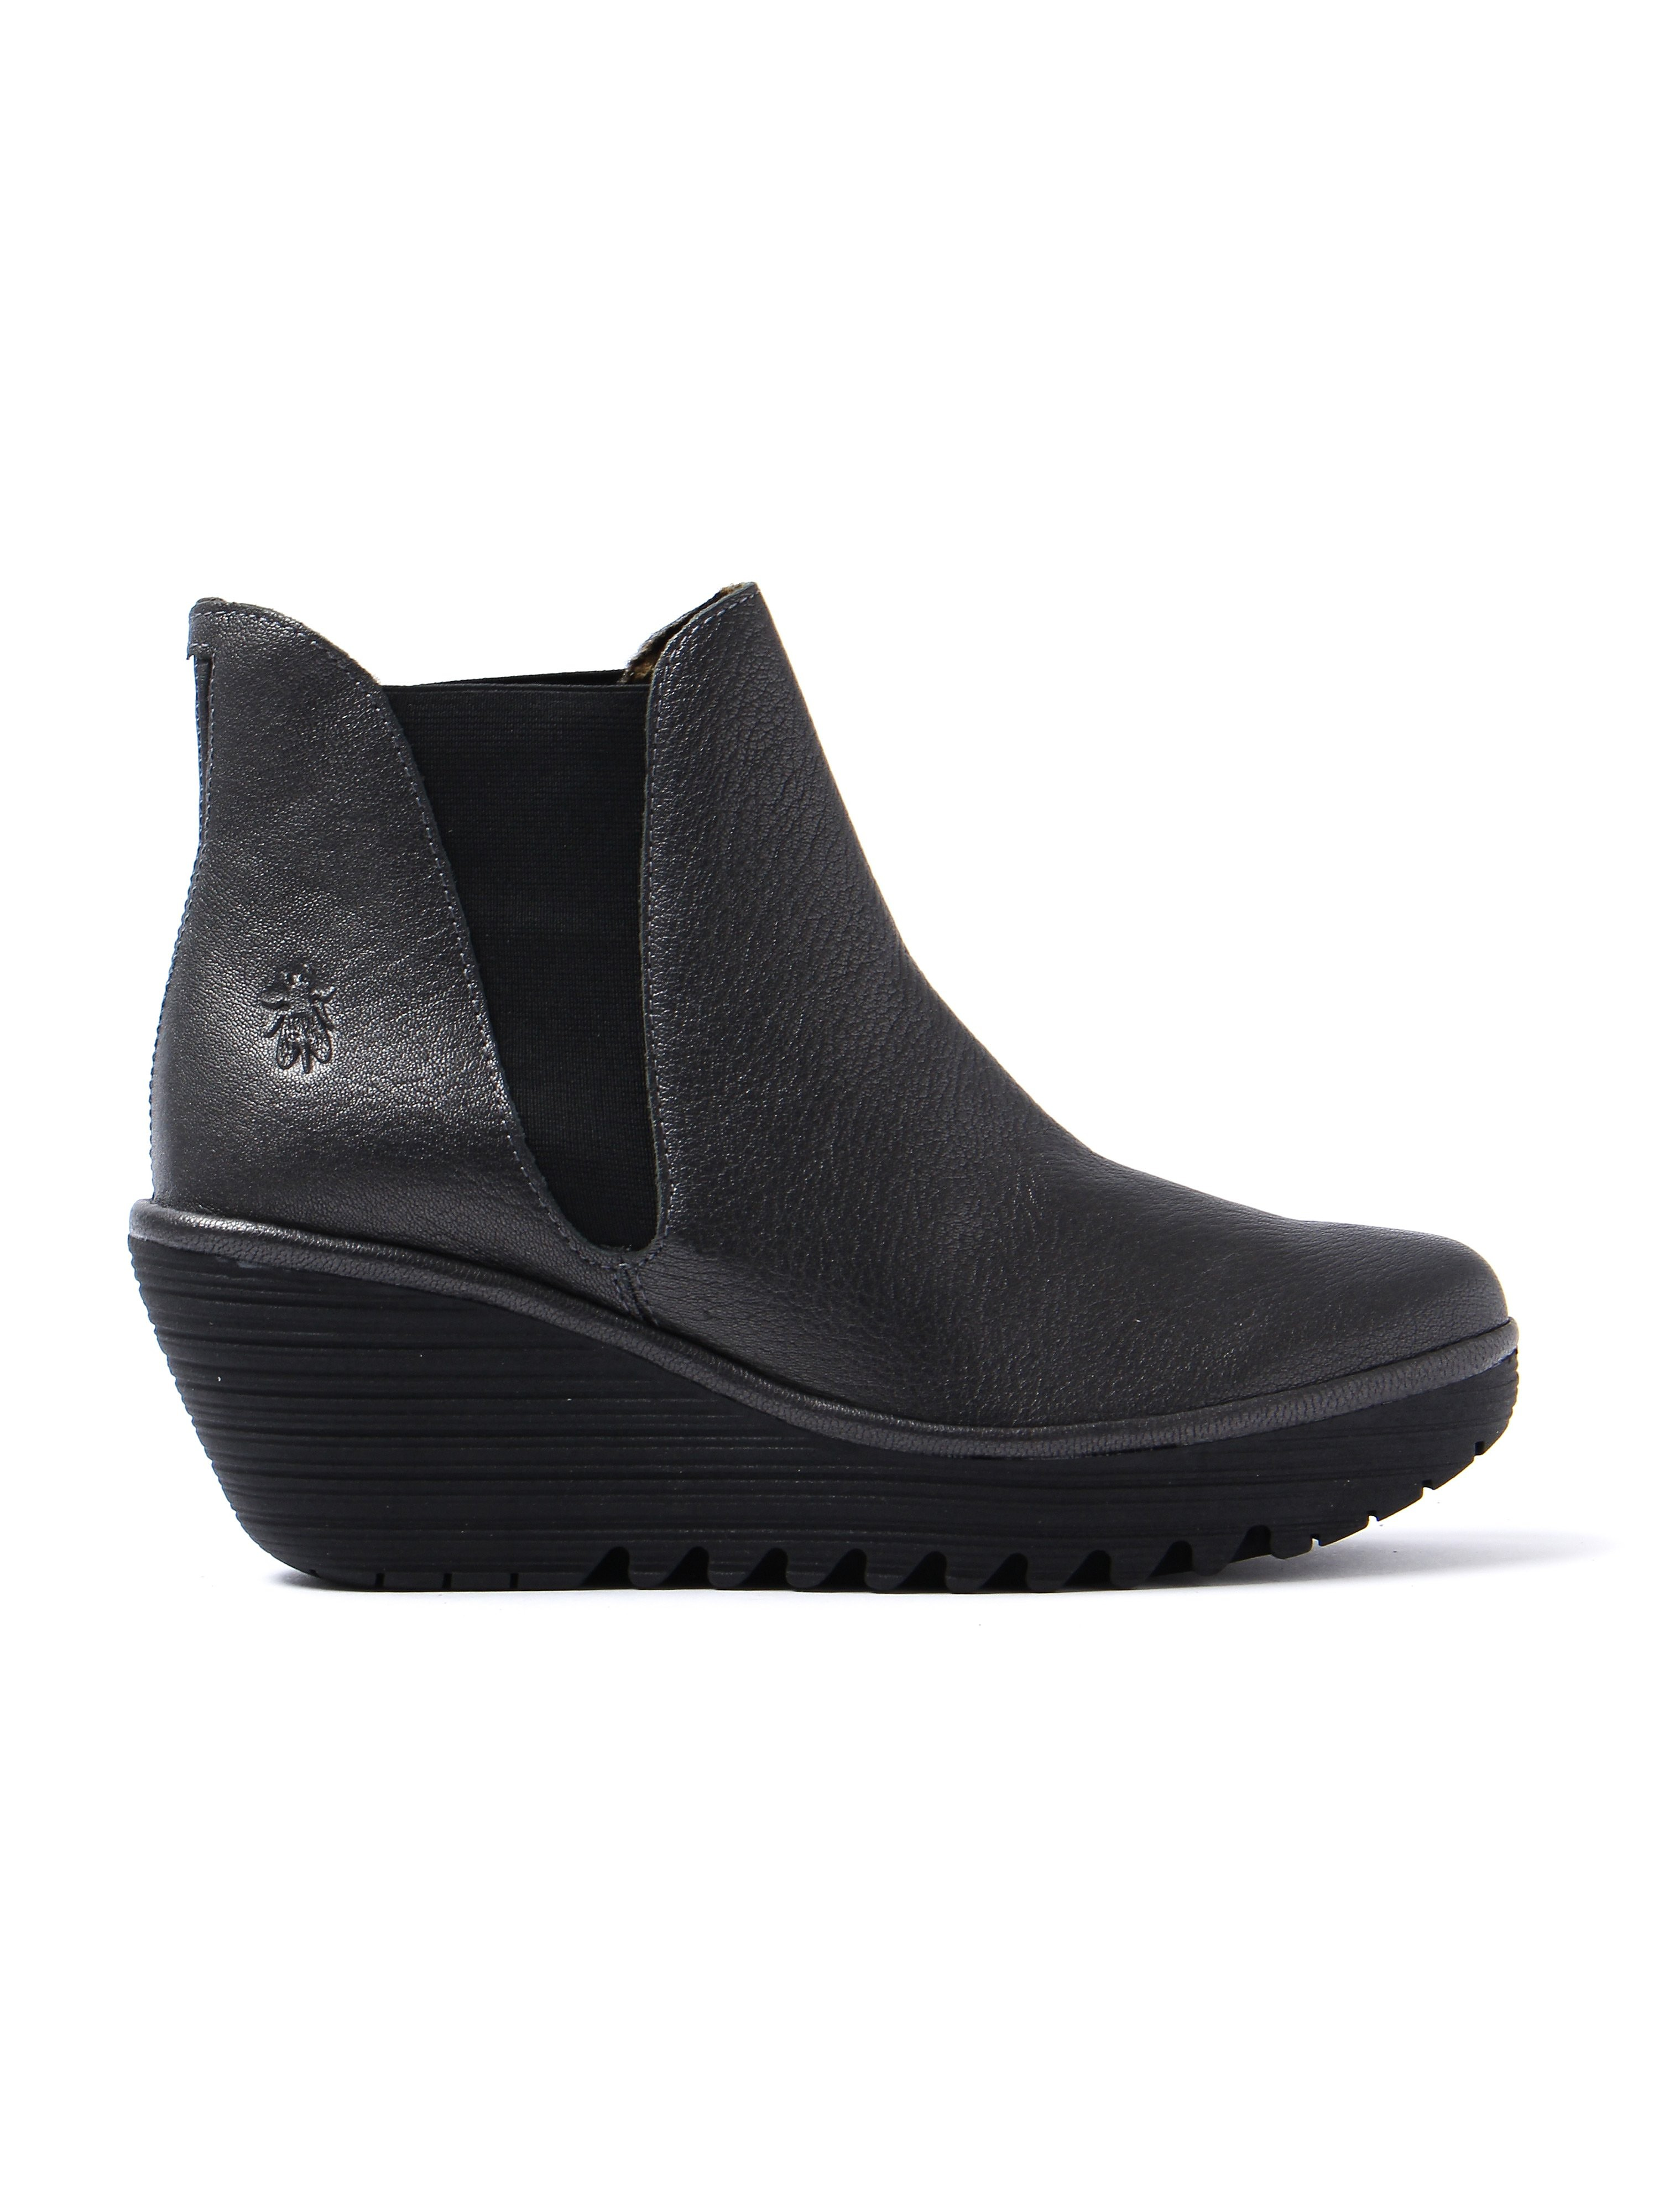 Fly London Women's Yoss Chelsea Boots - Graphite Leather